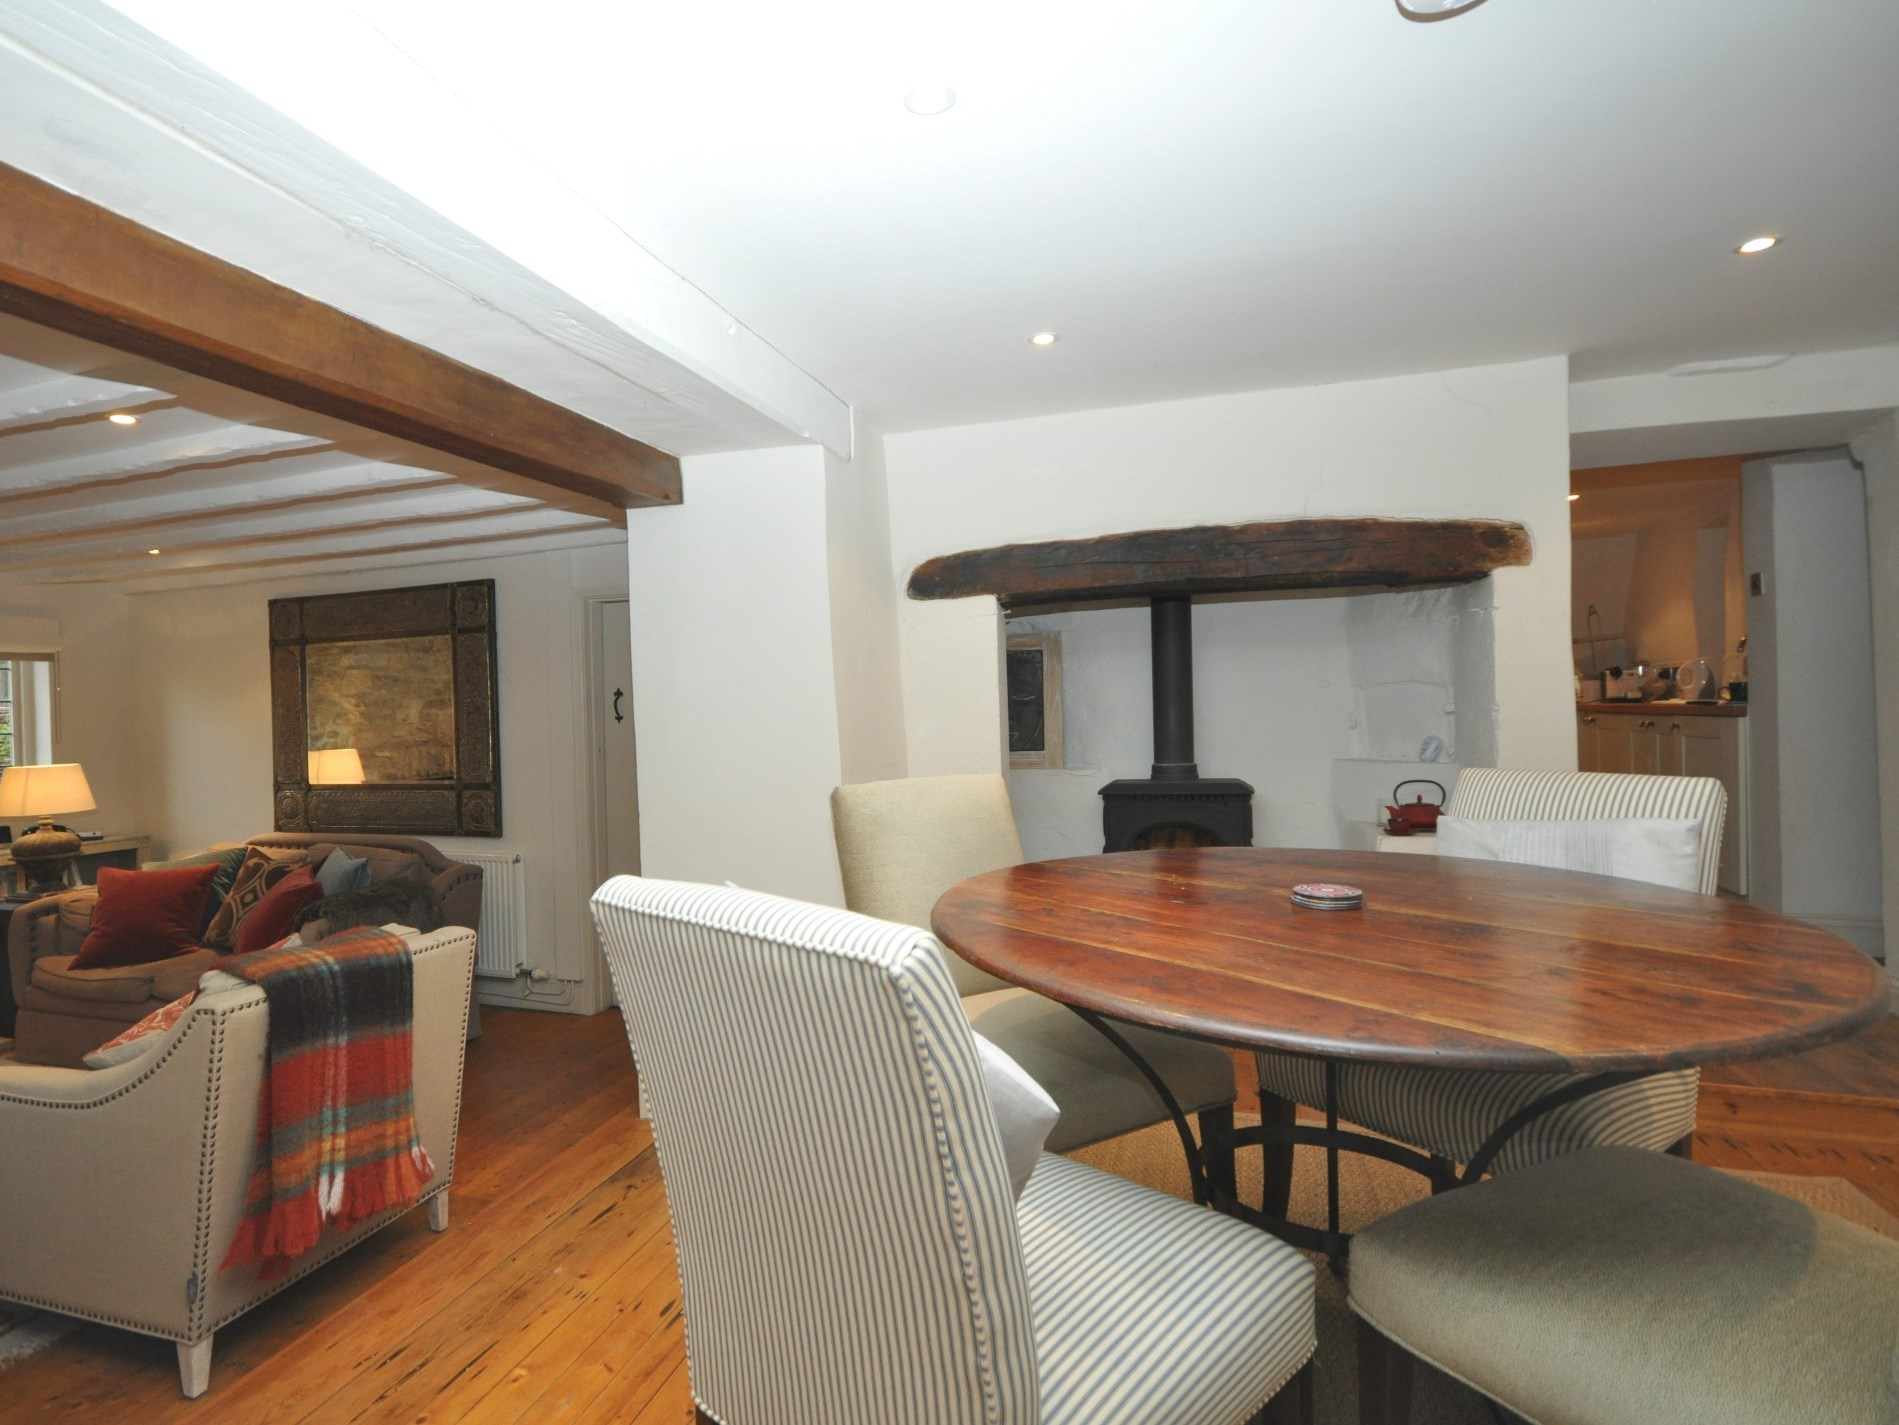 A great table for board games in front of the wood burner